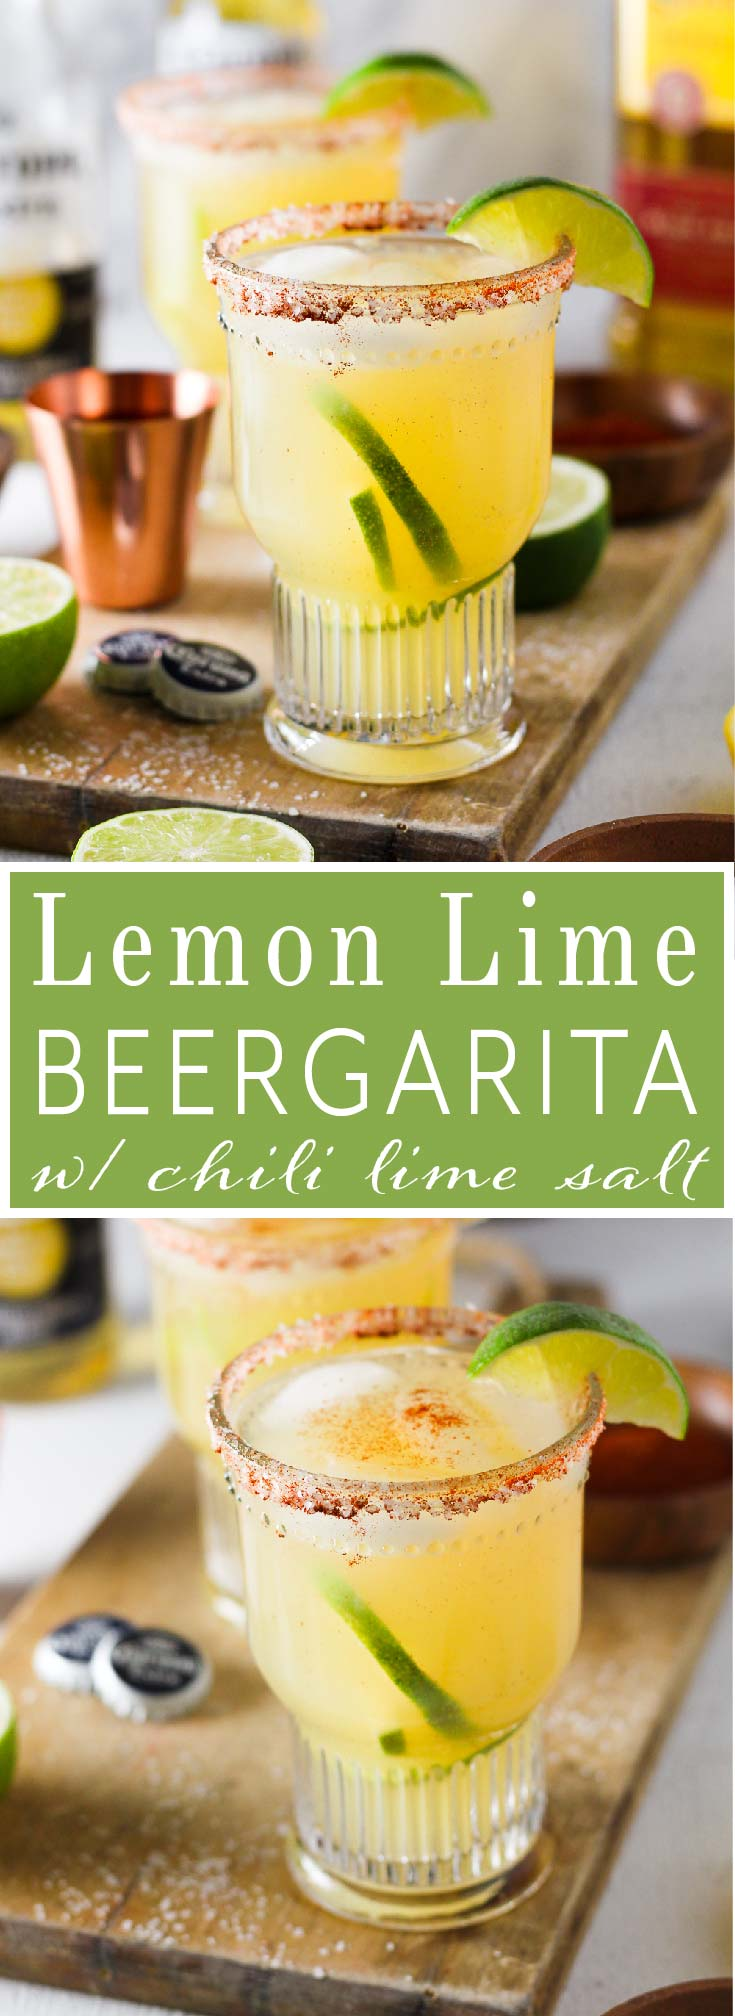 Crisp and refreshing margarita that is perfectly balanced with fresh lemon and lime juice, natural sweetener and tequila then topped off with Corona Extra and served in a glass with a chili-lime salt rim.